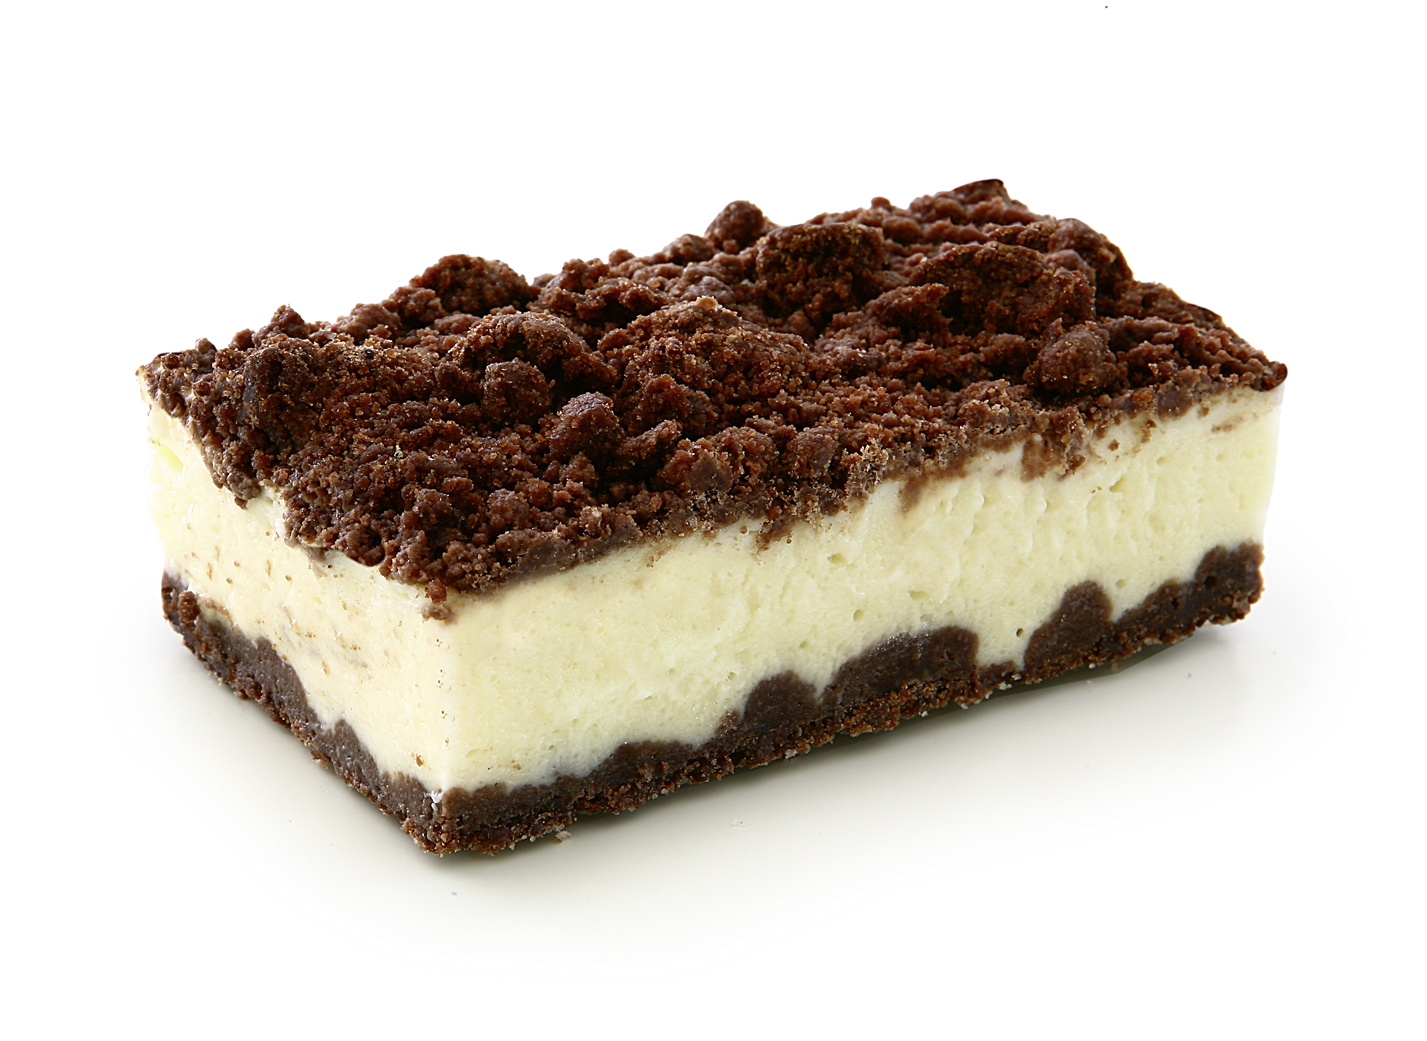 Russian Cheese Cake - 29% Curd cheese mass with streusel base with cacao and 13% streusel with cacao. measure: 9.5 x 5.5cm